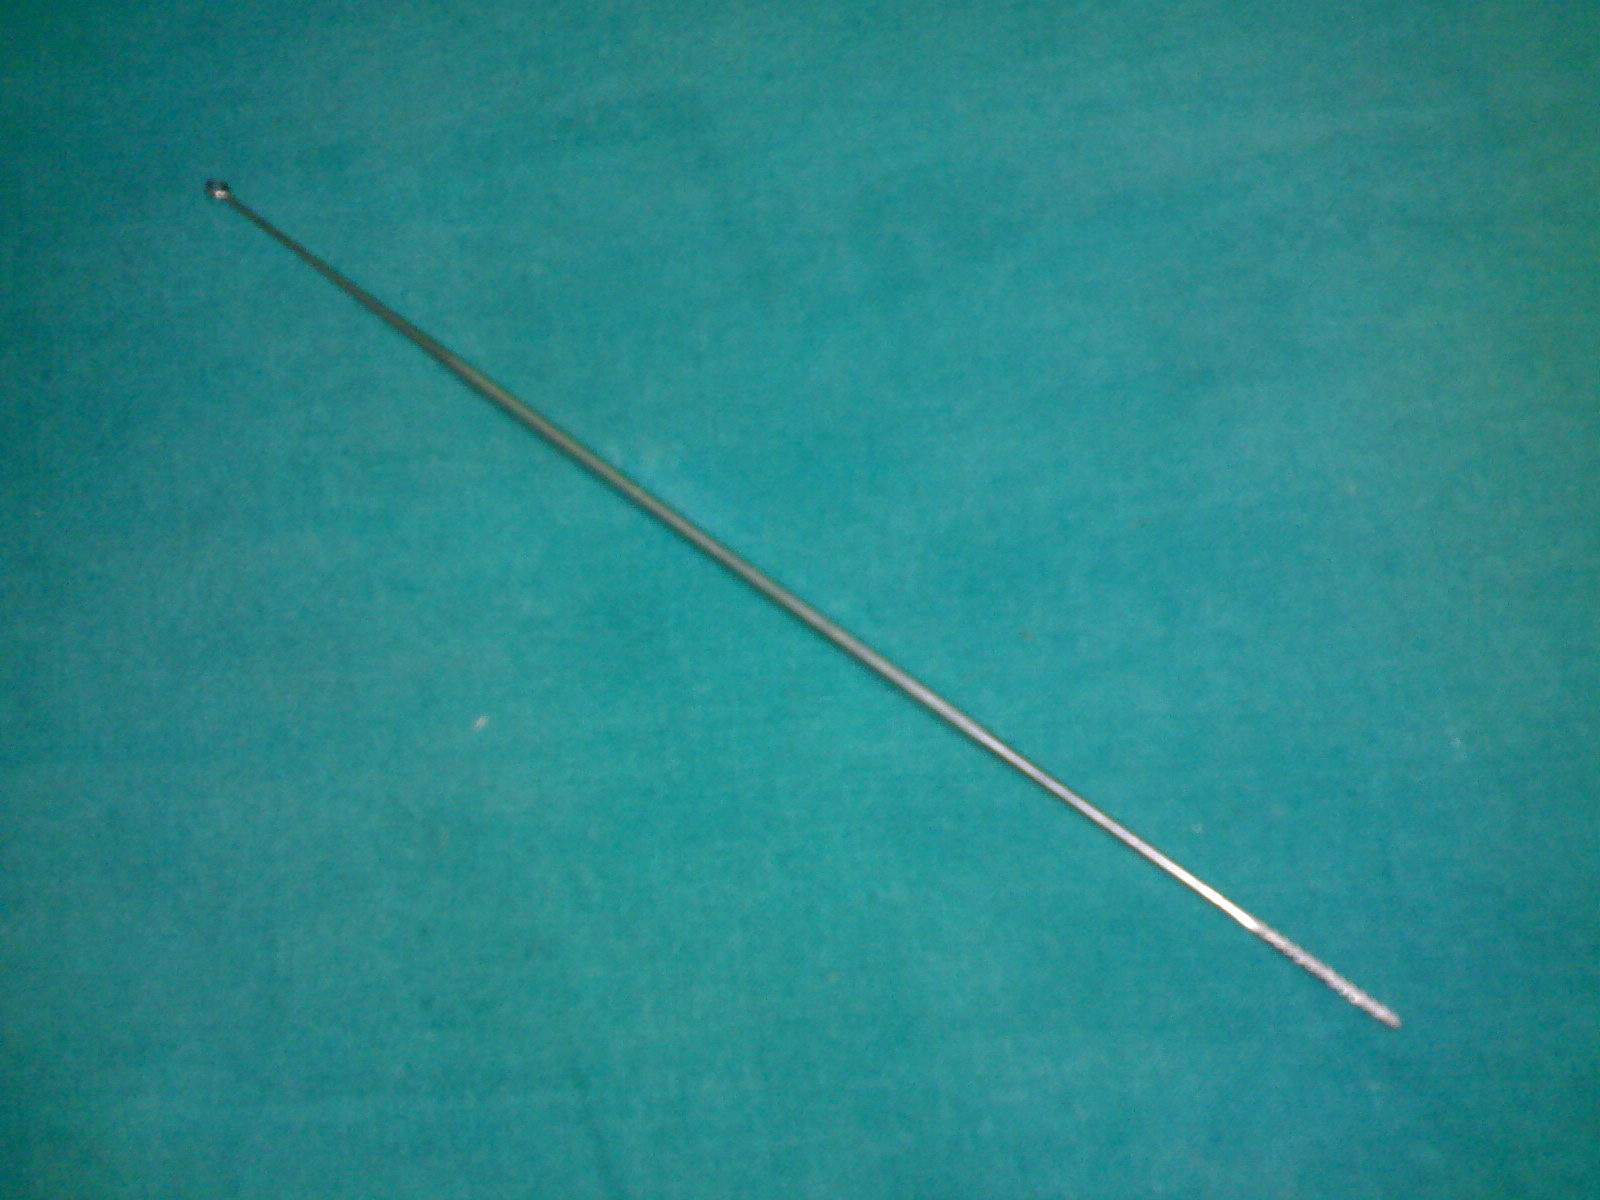 Jobson Horne Probe With Ring Curette